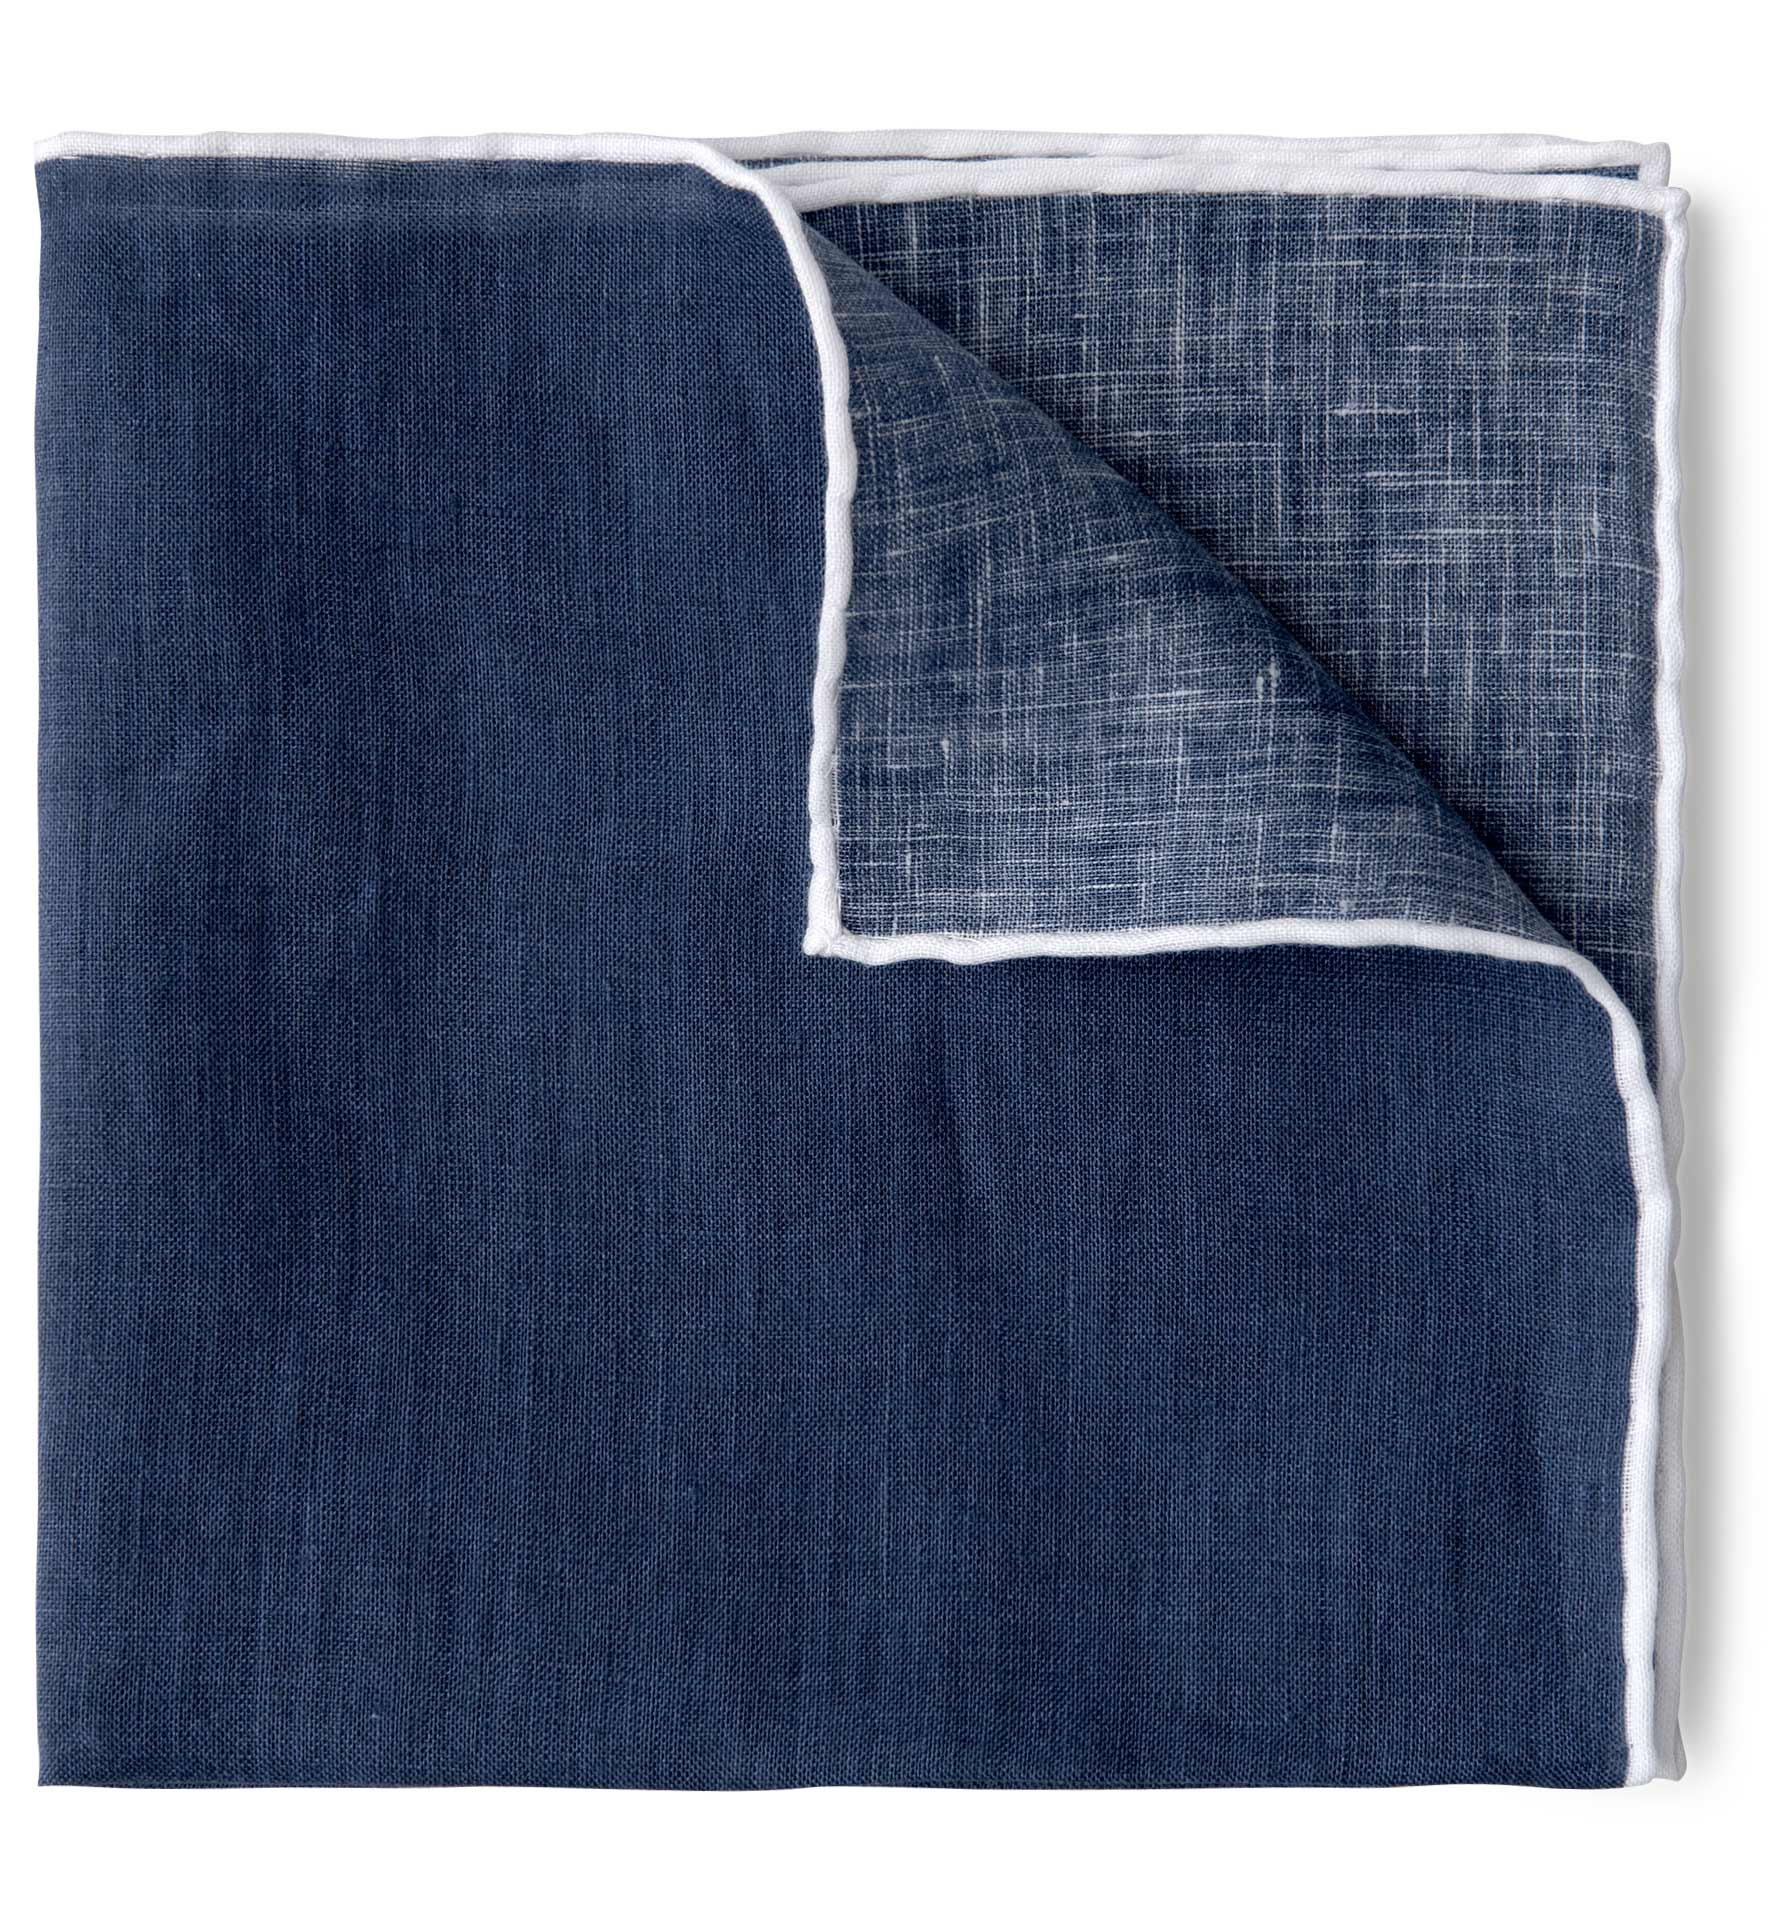 Zoom Image of Faded Navy with White Tipping Linen Pocket Square